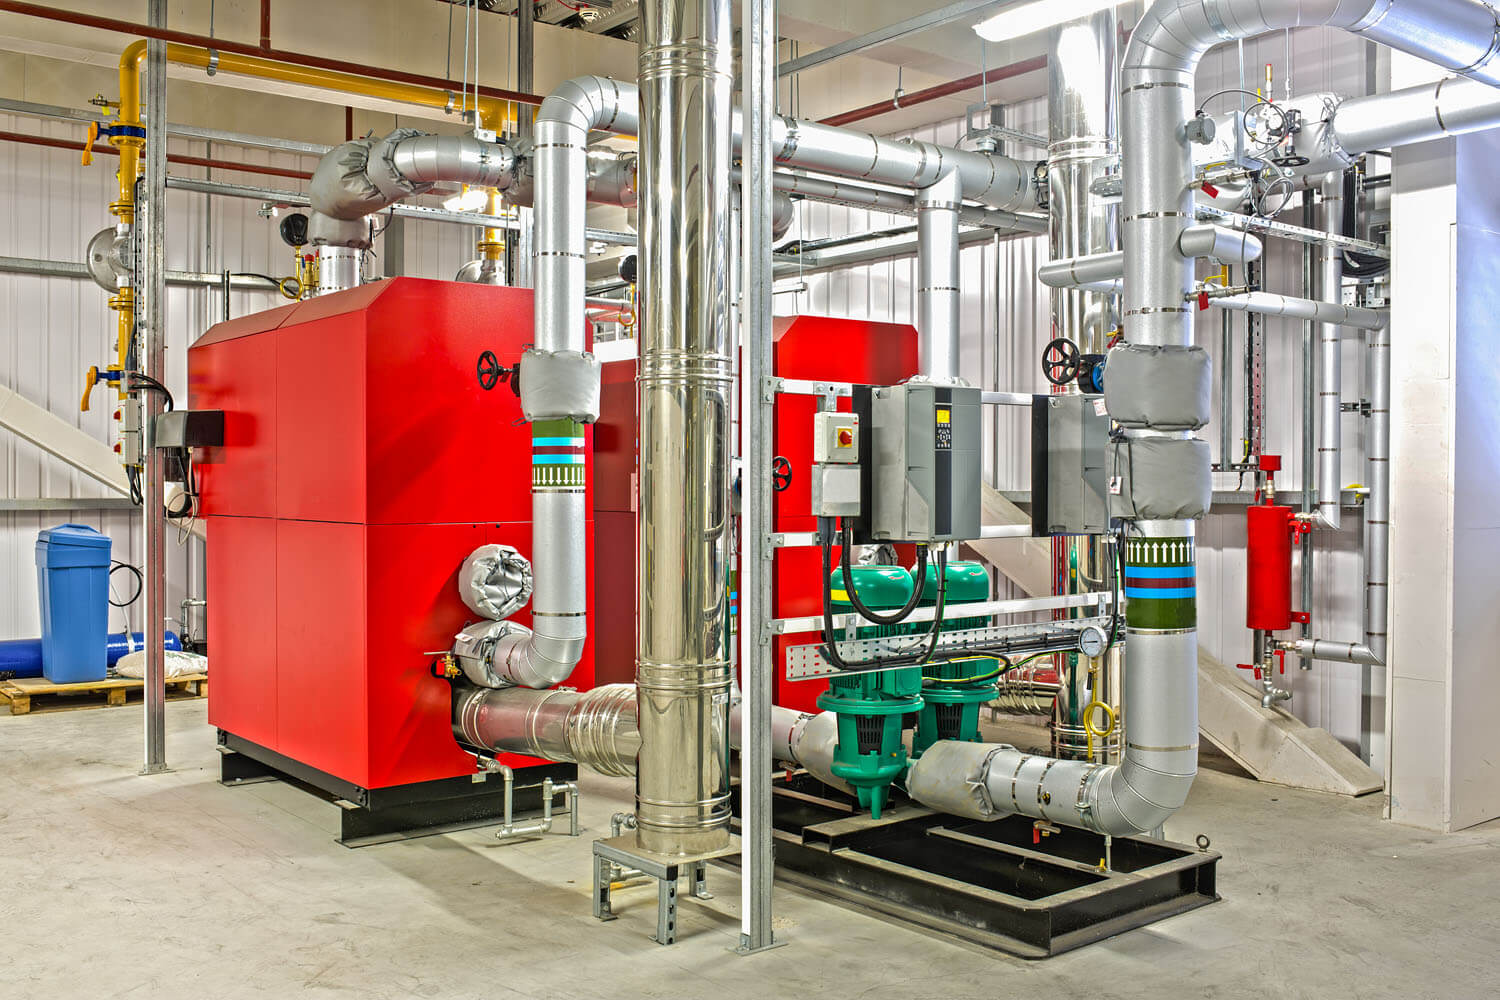 Commercial Boilers image